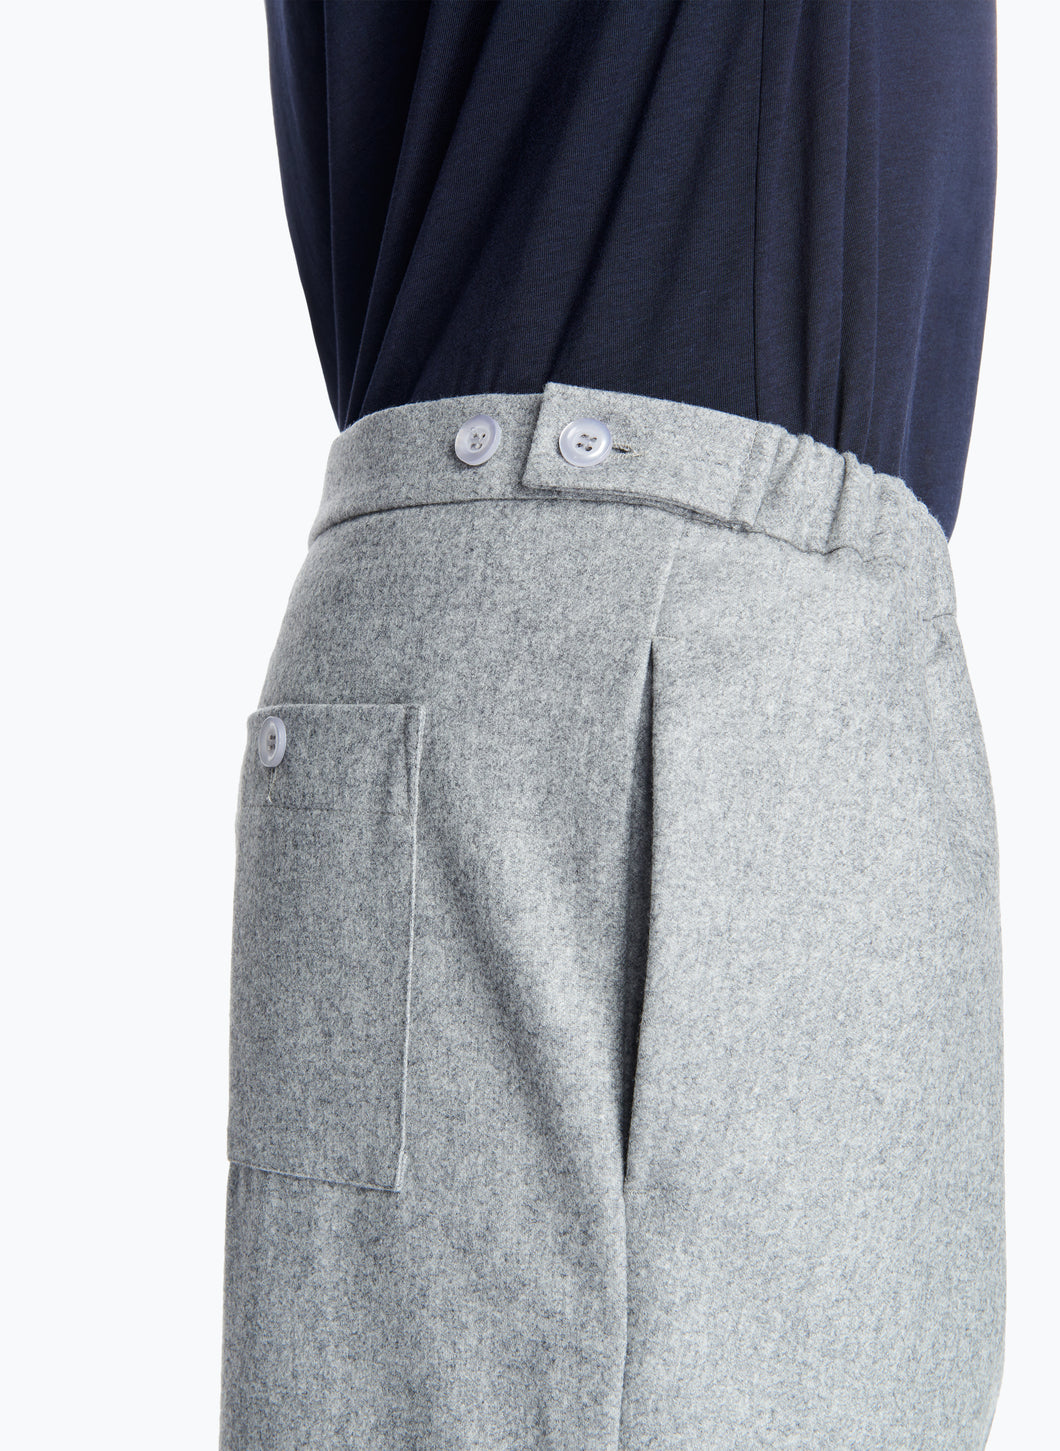 Pleated Pants with Elastic Sides in Light Grey Flannel Wool